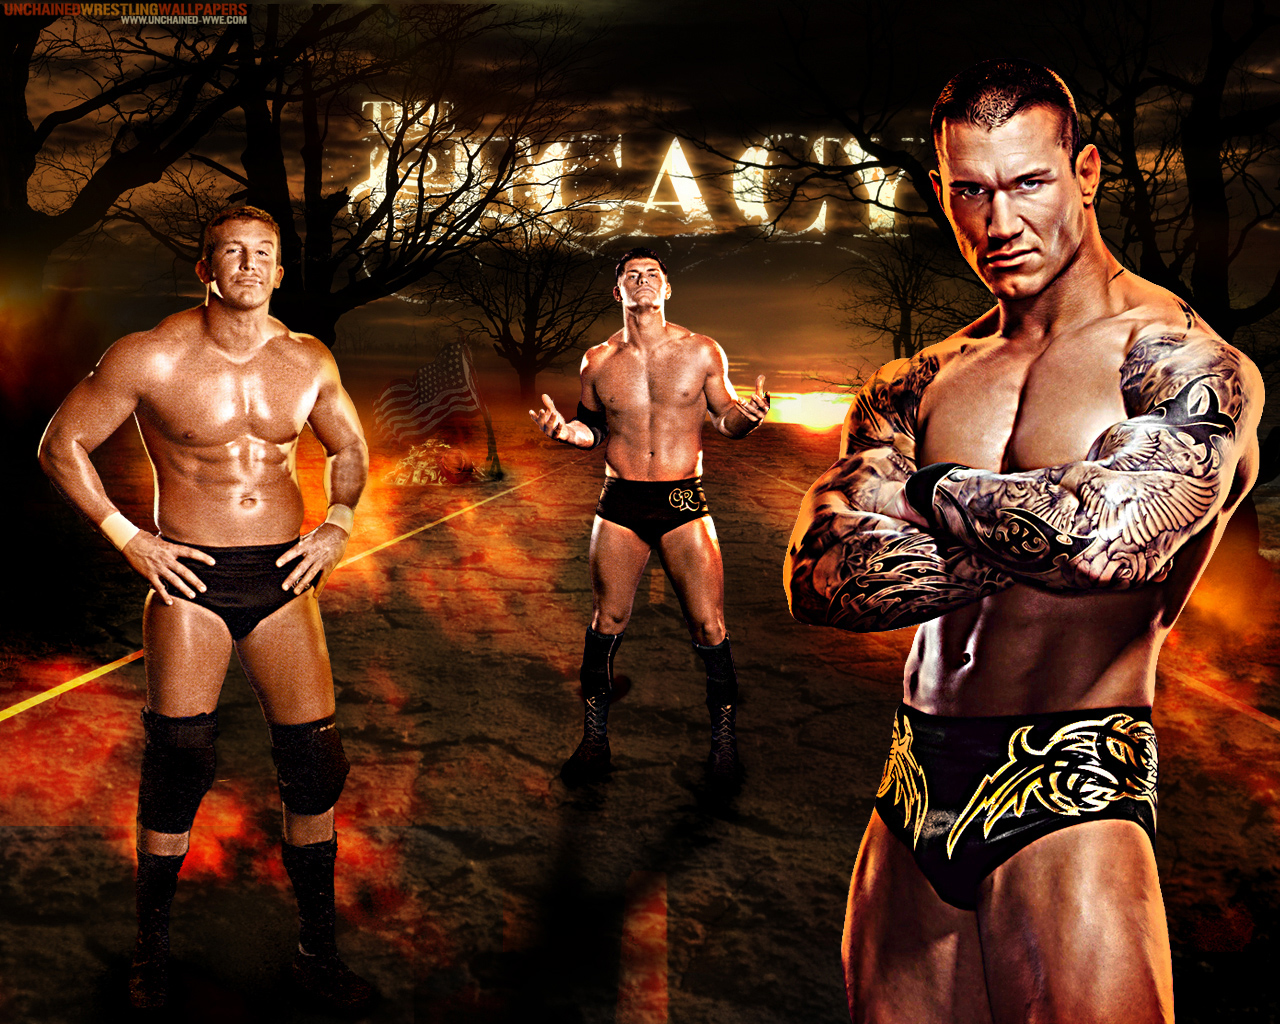 Randy Orton Imagenes The Legacy Hd Fondo De Pantalla And Background